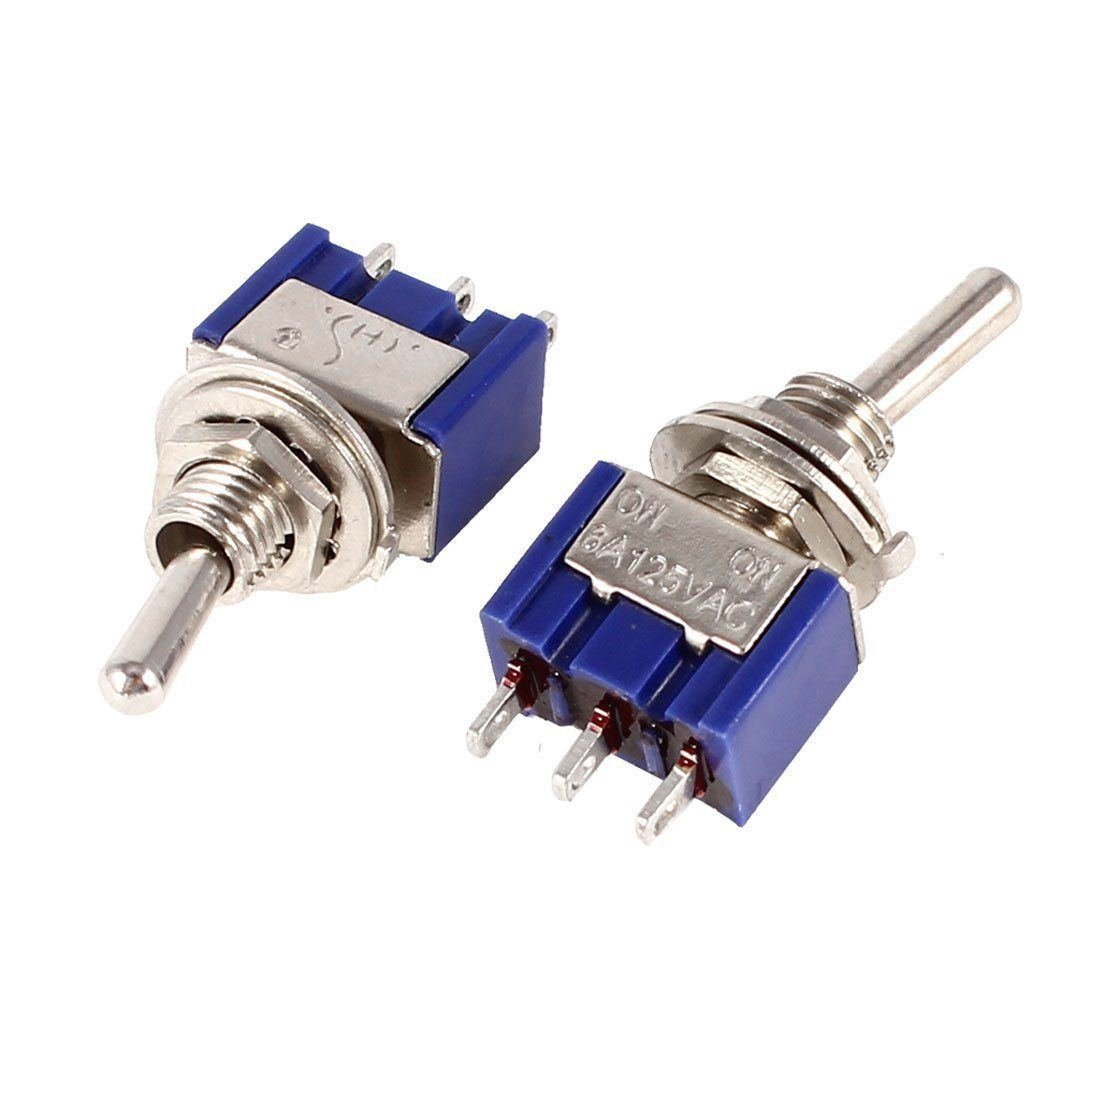 5pcs MTS-102 3Pin 2 Files SPDT ON-ON Mini Toggle Switch 6A 125VAC Mini Switches